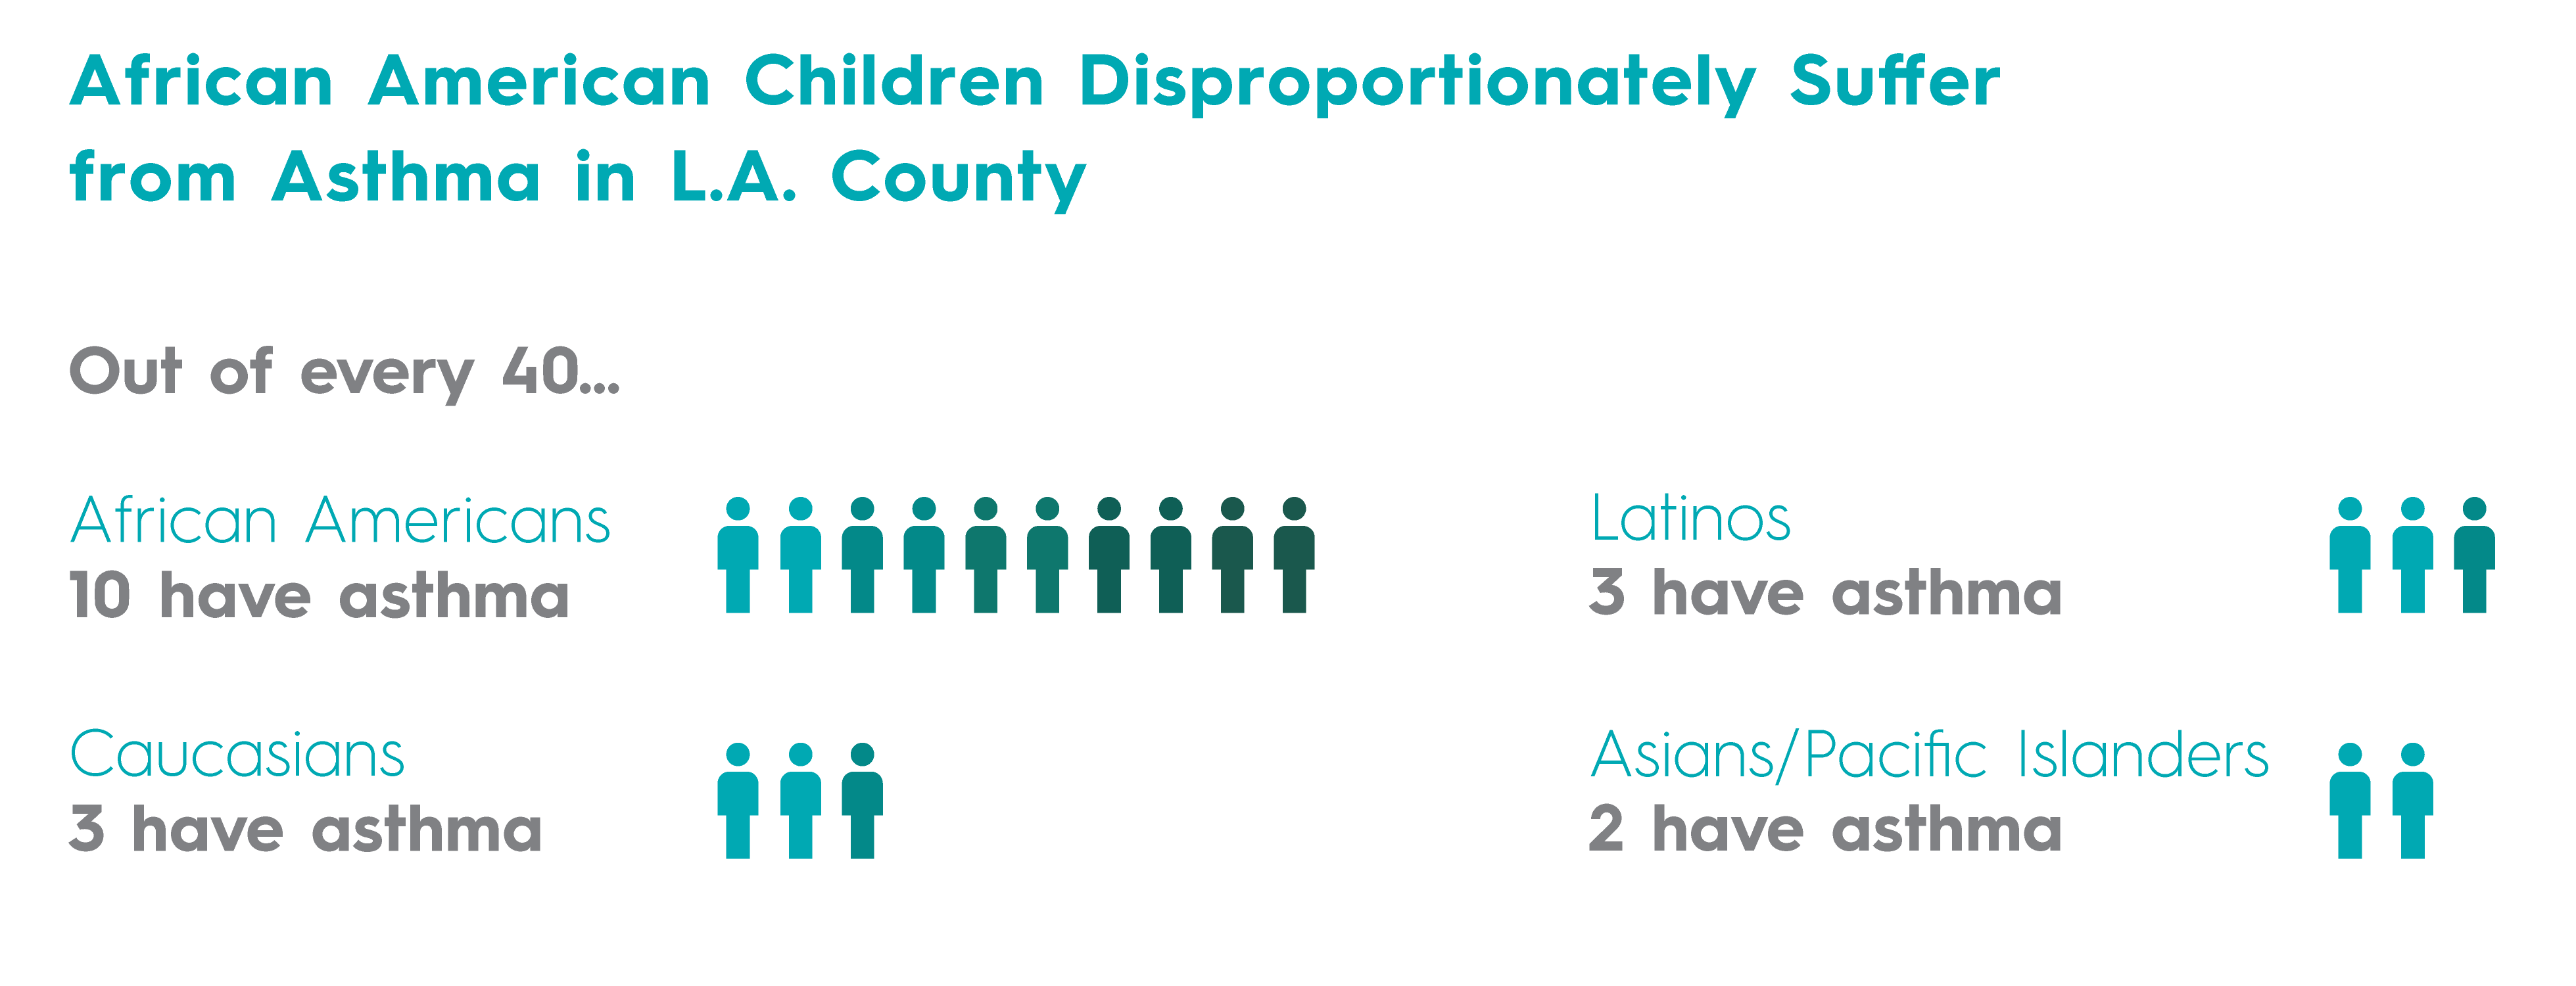 African American children disproportionately suffer from asthma in L.A. County.